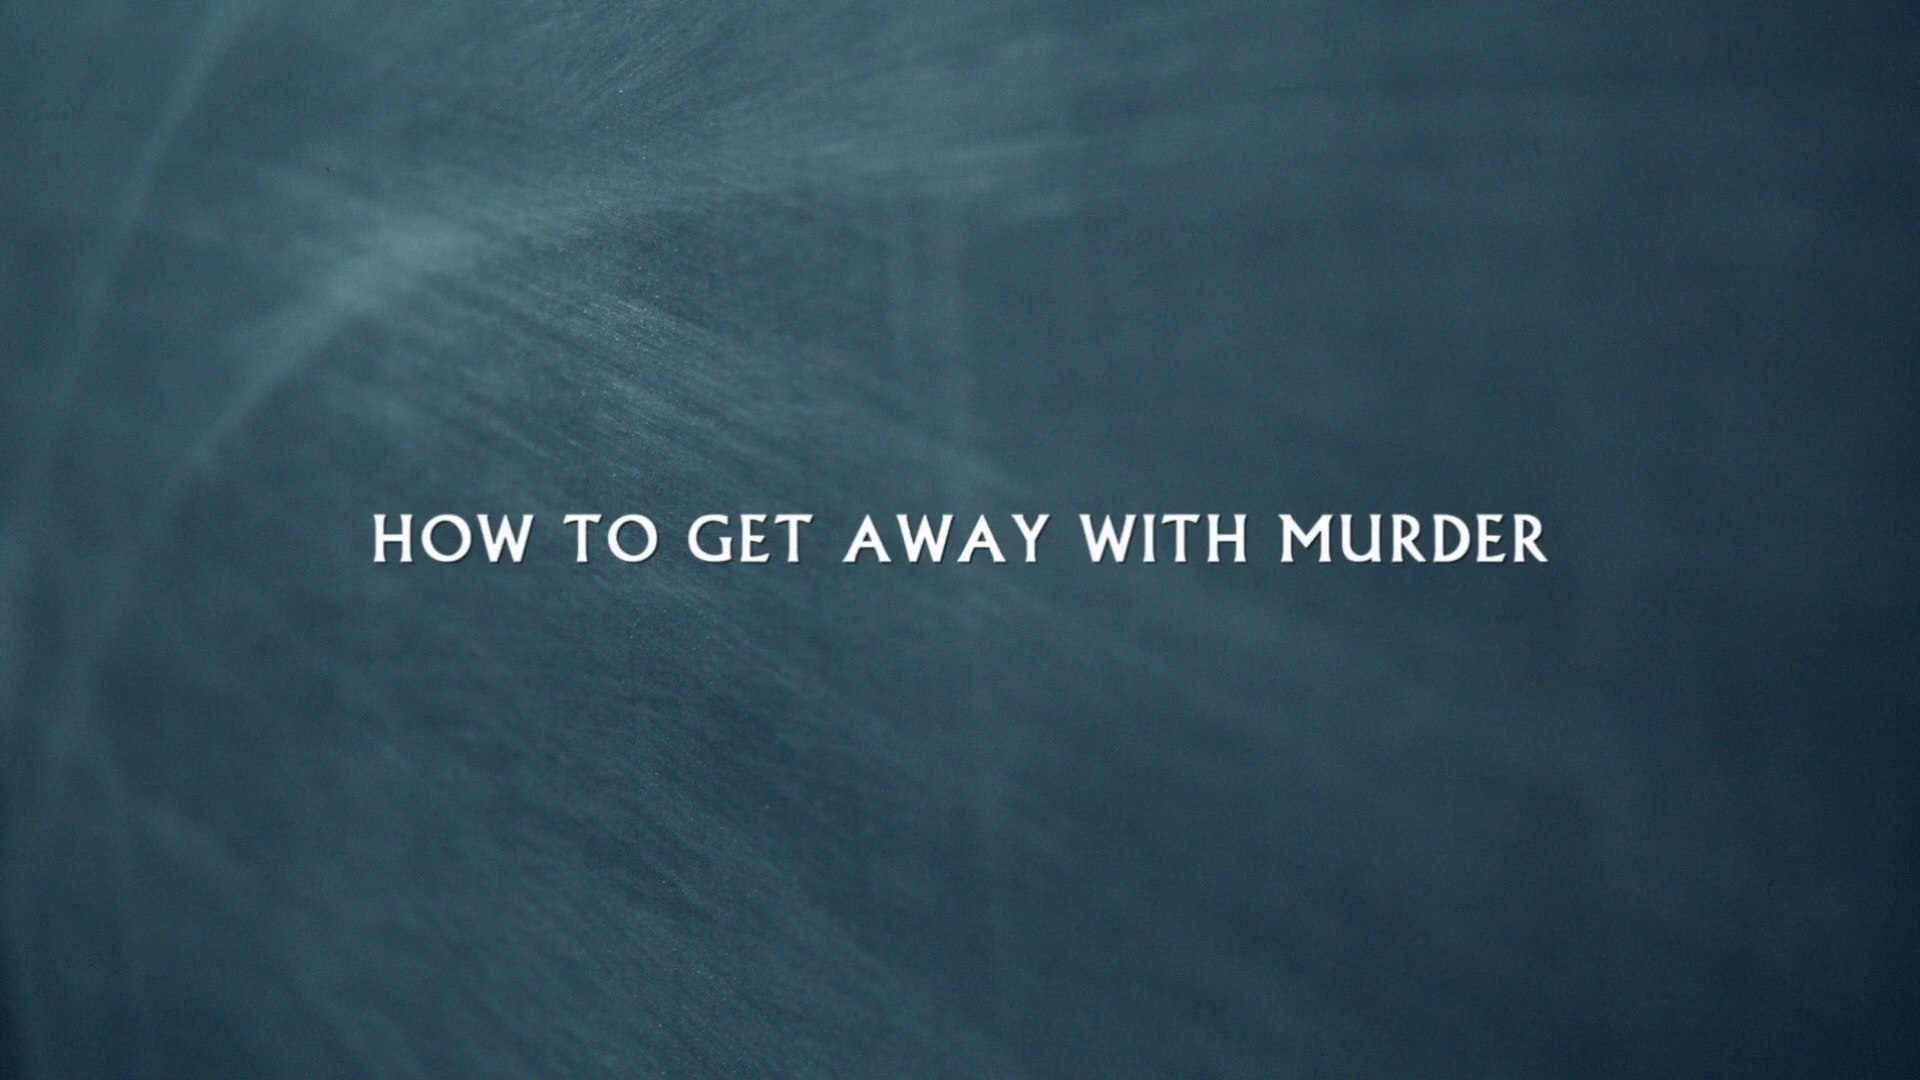 How to get away with murder how to get away with murder wiki